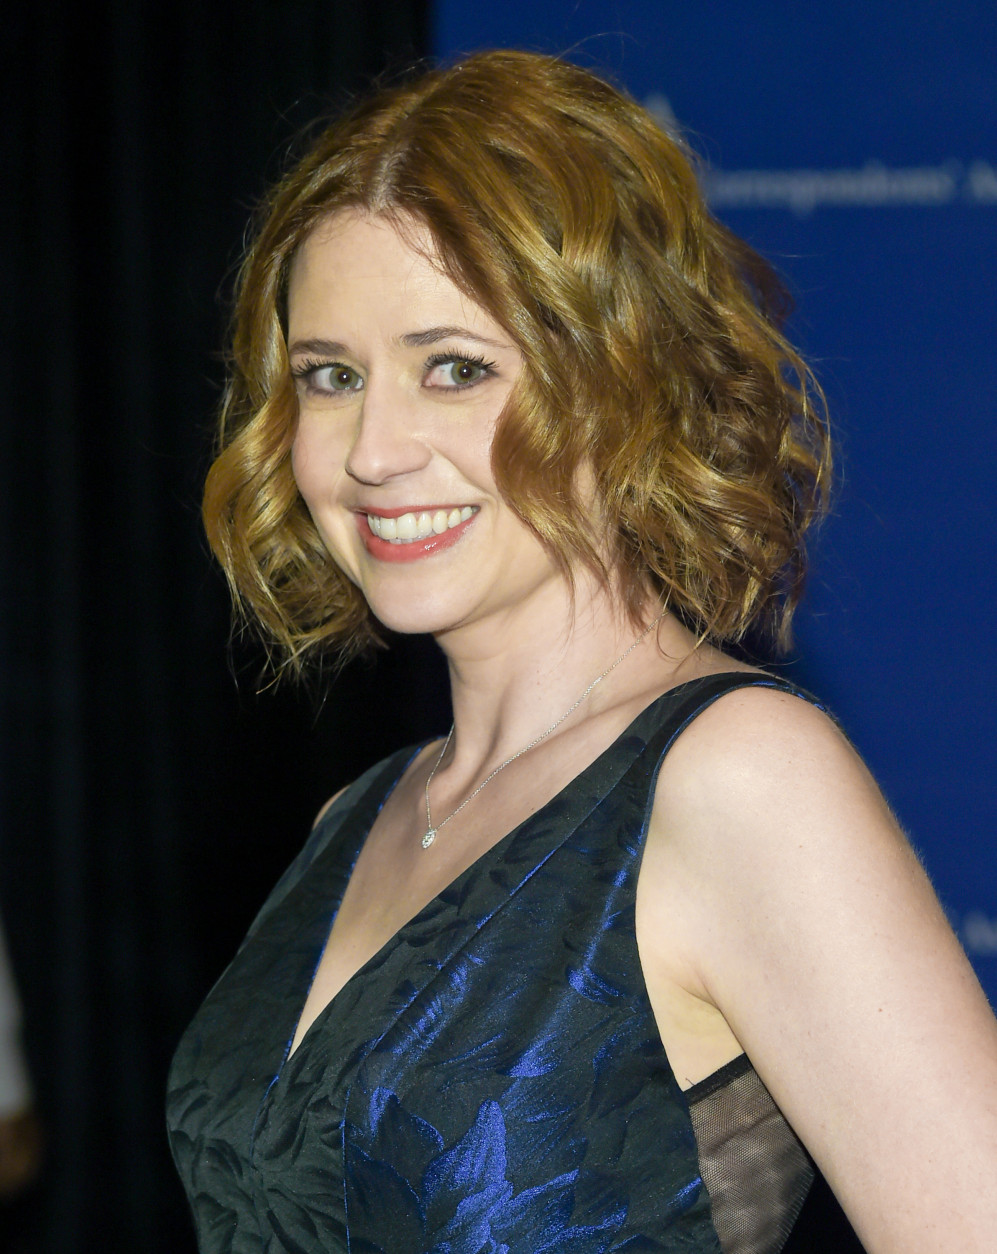 Jenna Fischer attends the White House Correspondents' Association Dinner at the Washington Hilton Hotel, Saturday, April 30, 2016, in Washington. (Photo by Evan Agostini/Invision/AP)